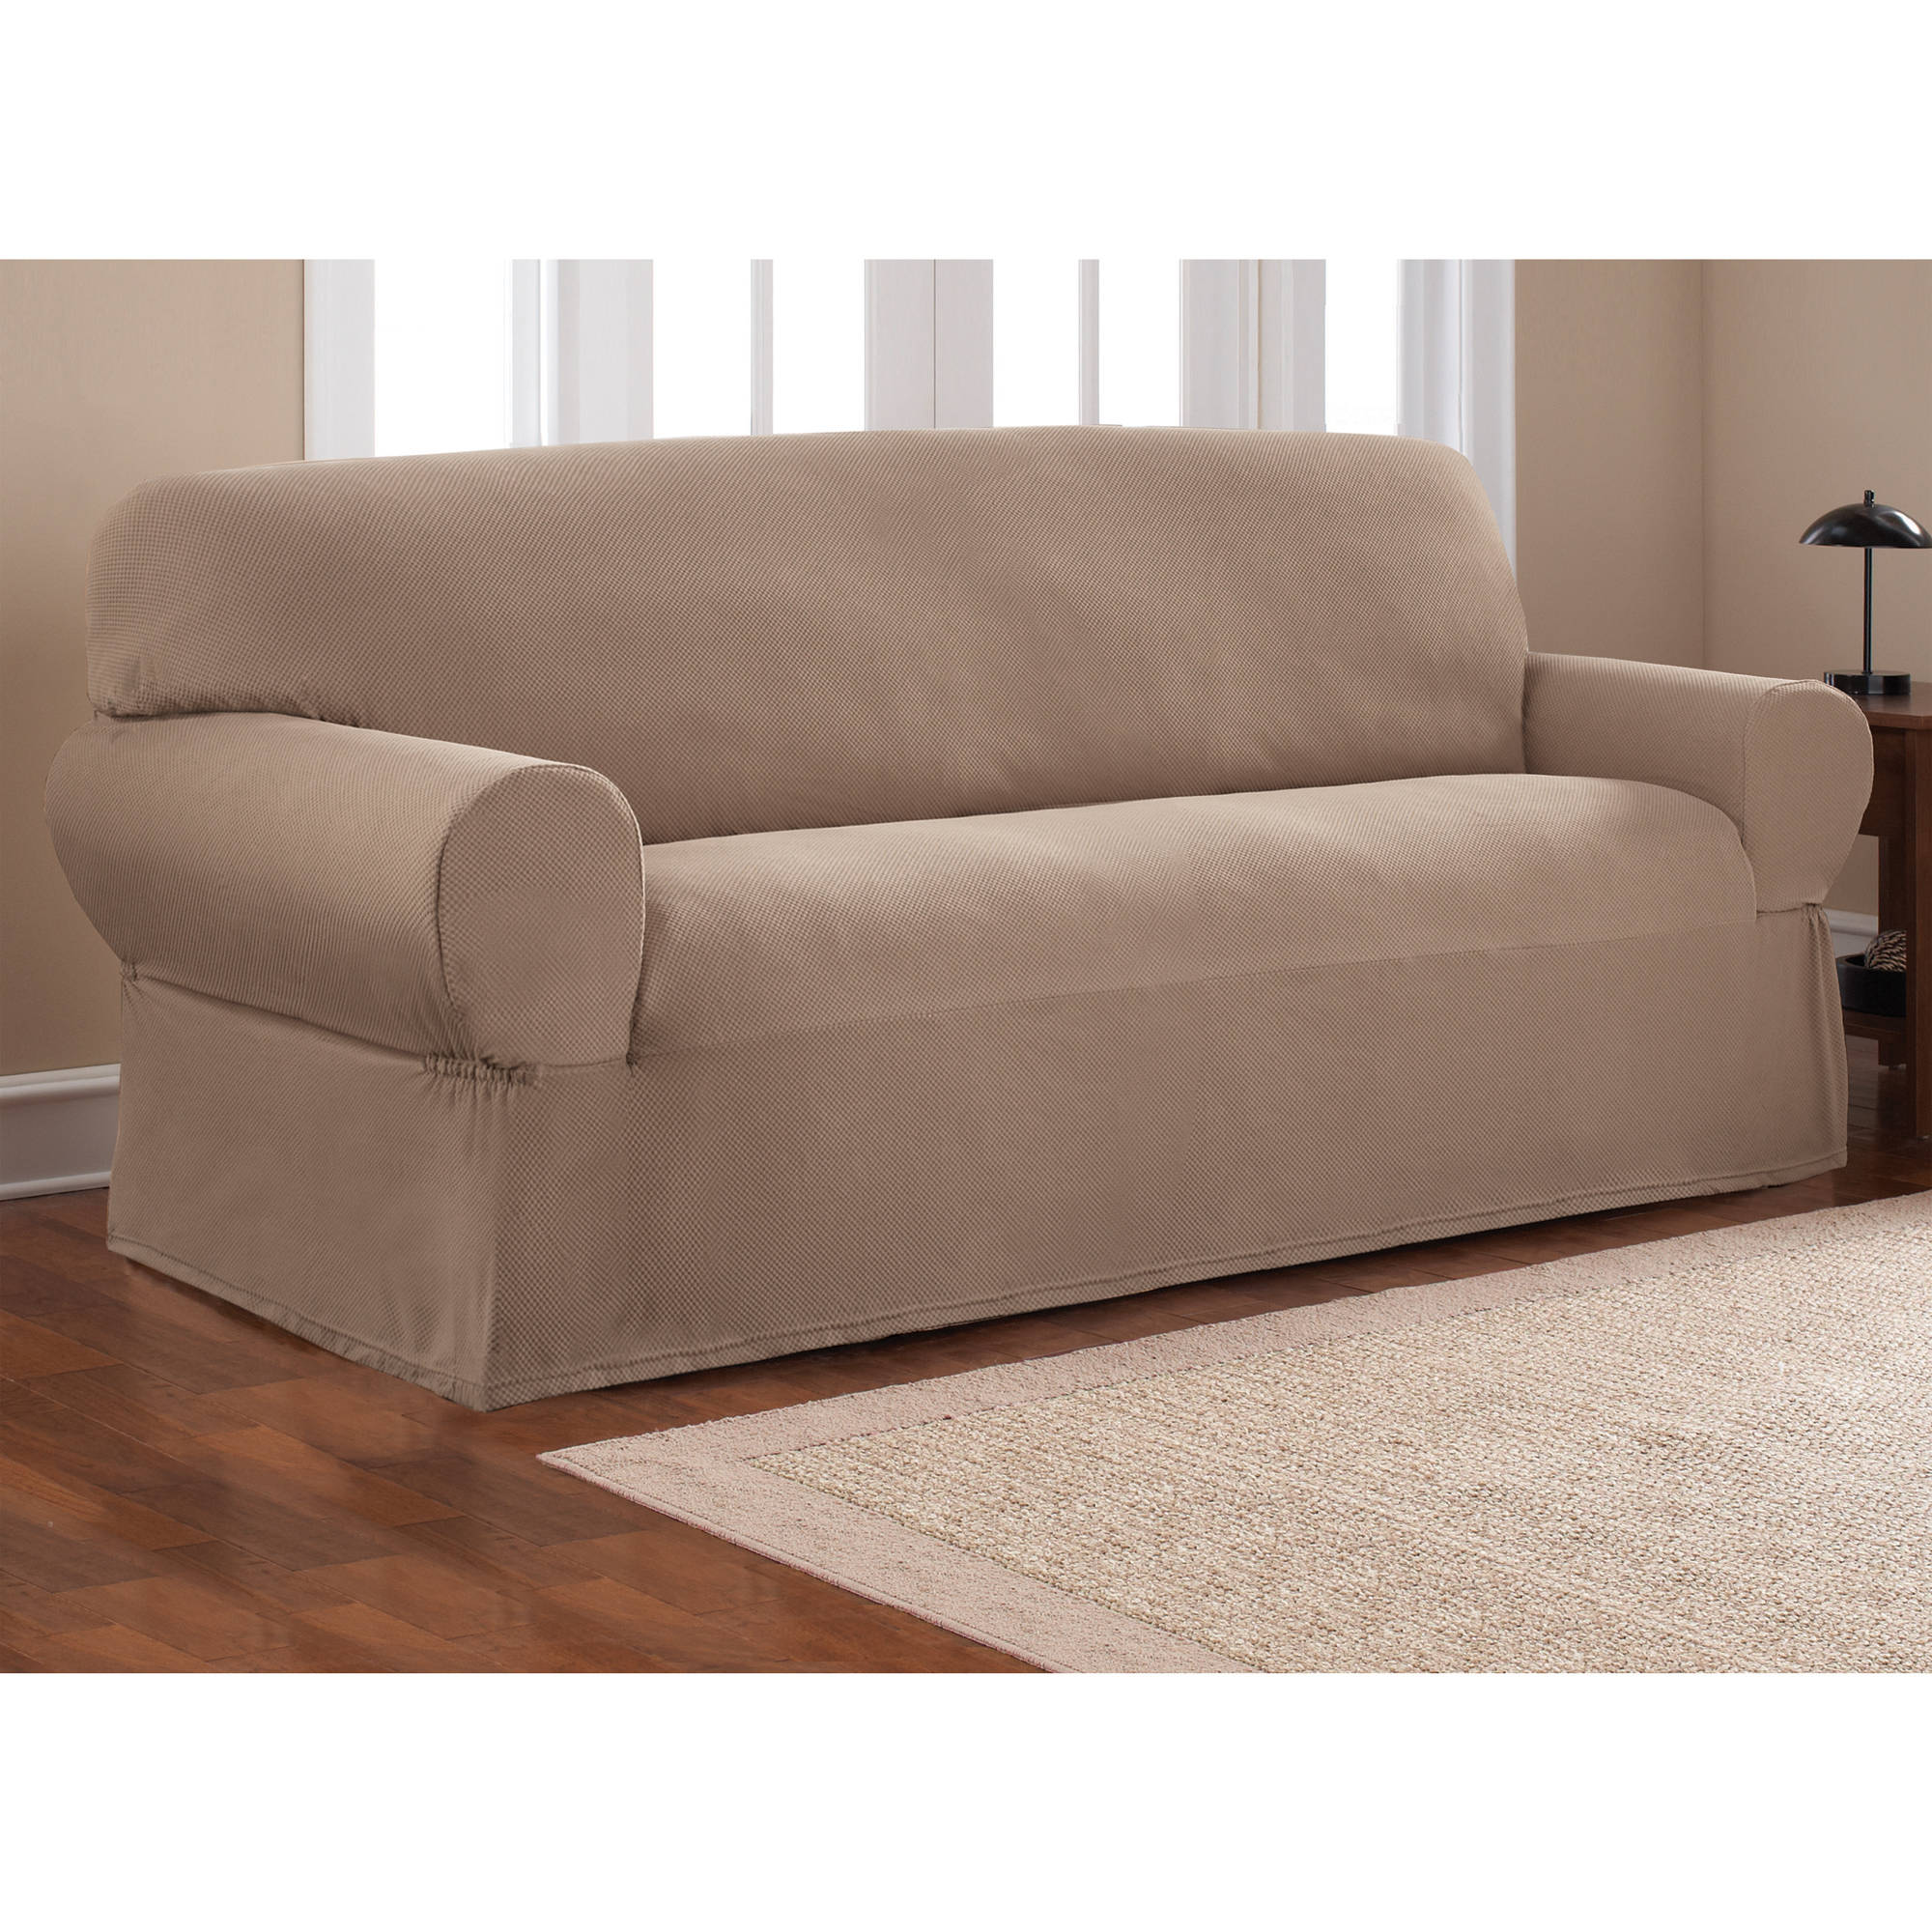 stretch jumbo slipcovers slipcover p recliner diamond double